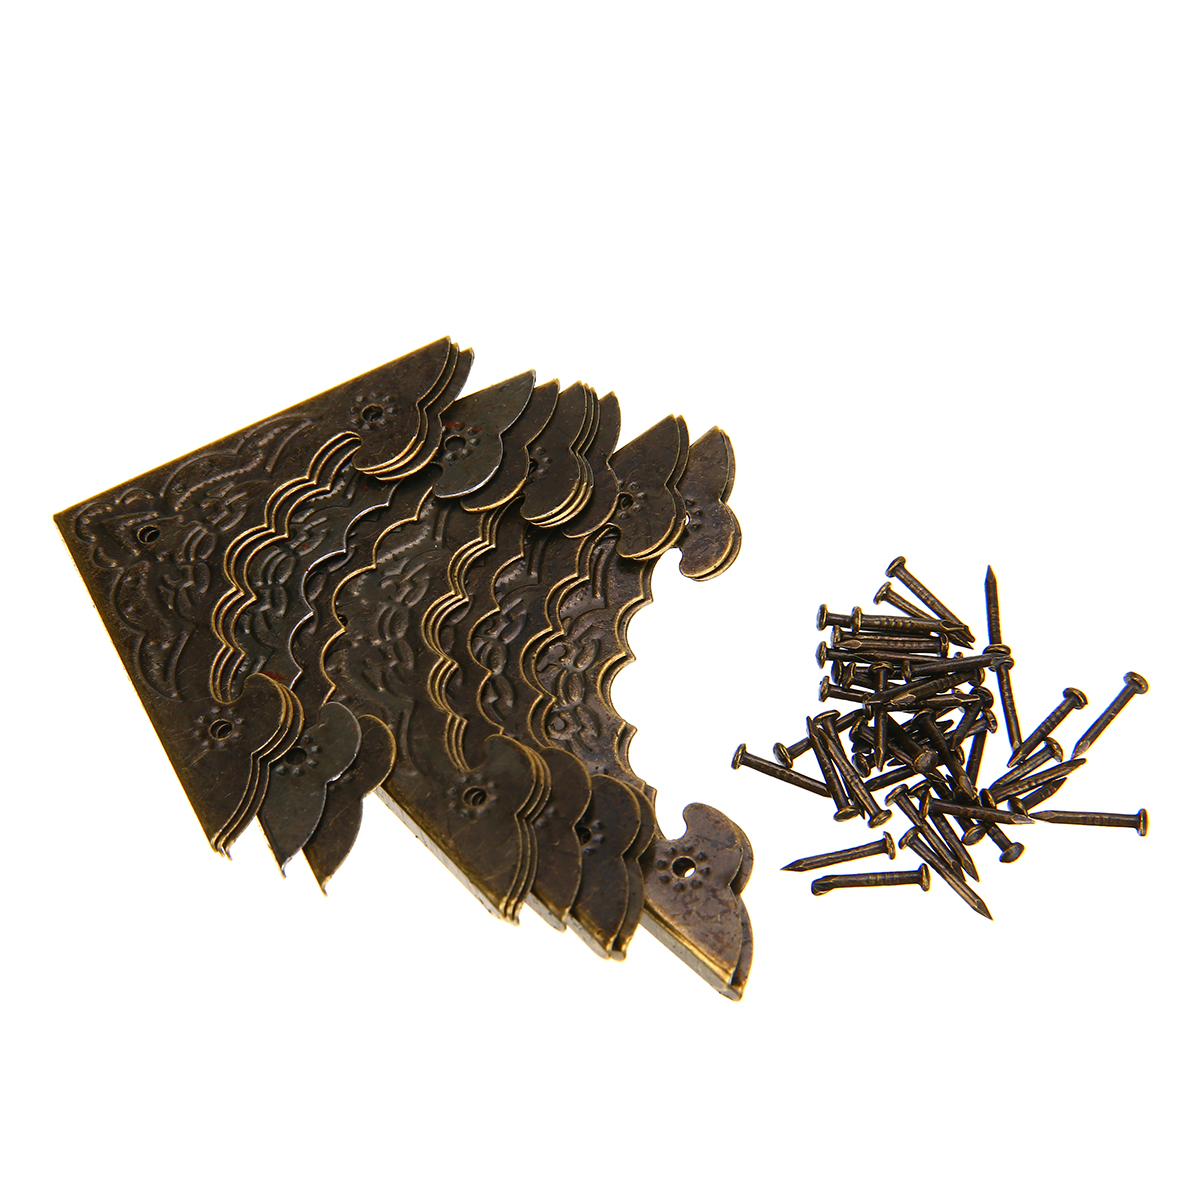 12Pcs Decorative Bat Shape Wood Case Corner Protector Antique Brass Jewelry Gift Box Corner Foot Metal Guard Corners With Screws